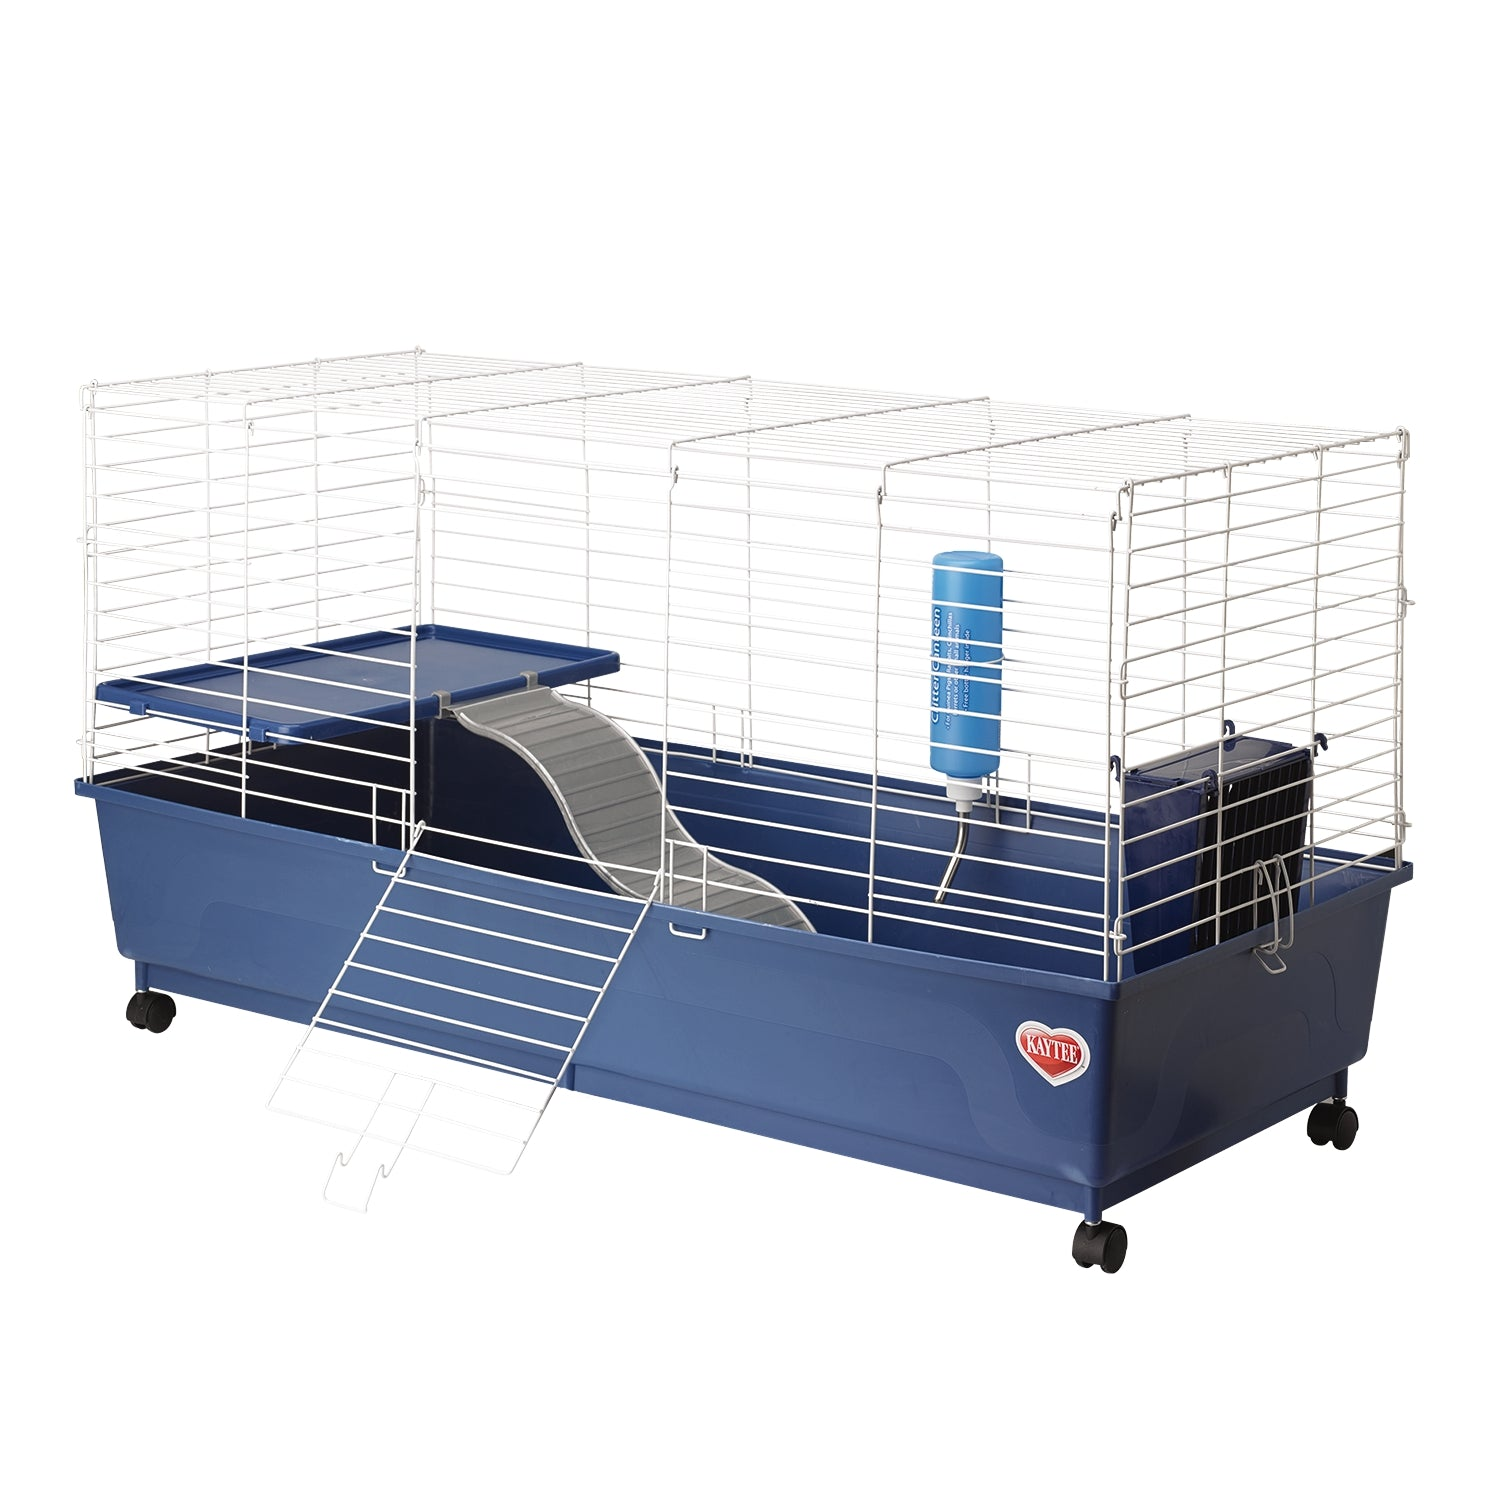 Kaytee My First Home Deluxe Hedgehog 2-Level Cage with Wheels